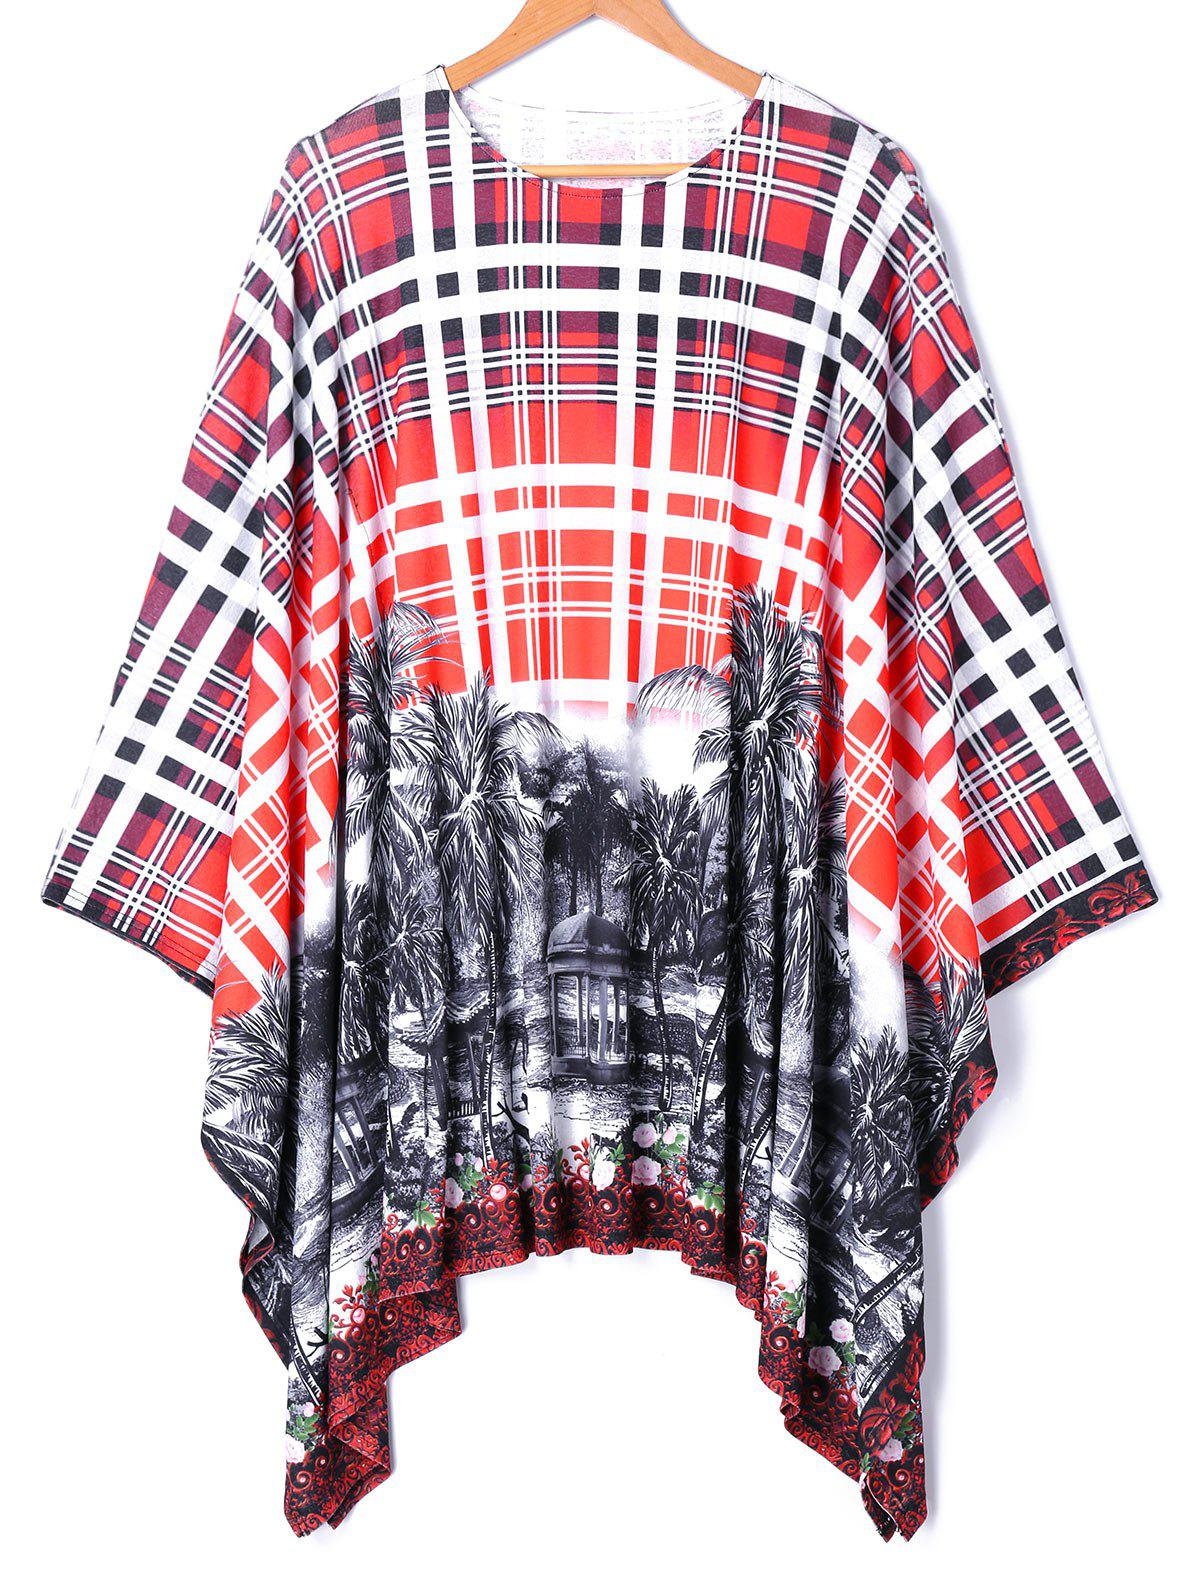 Trendy Oversized Batwing Sleeve Plaid Printed Handkerchief Top